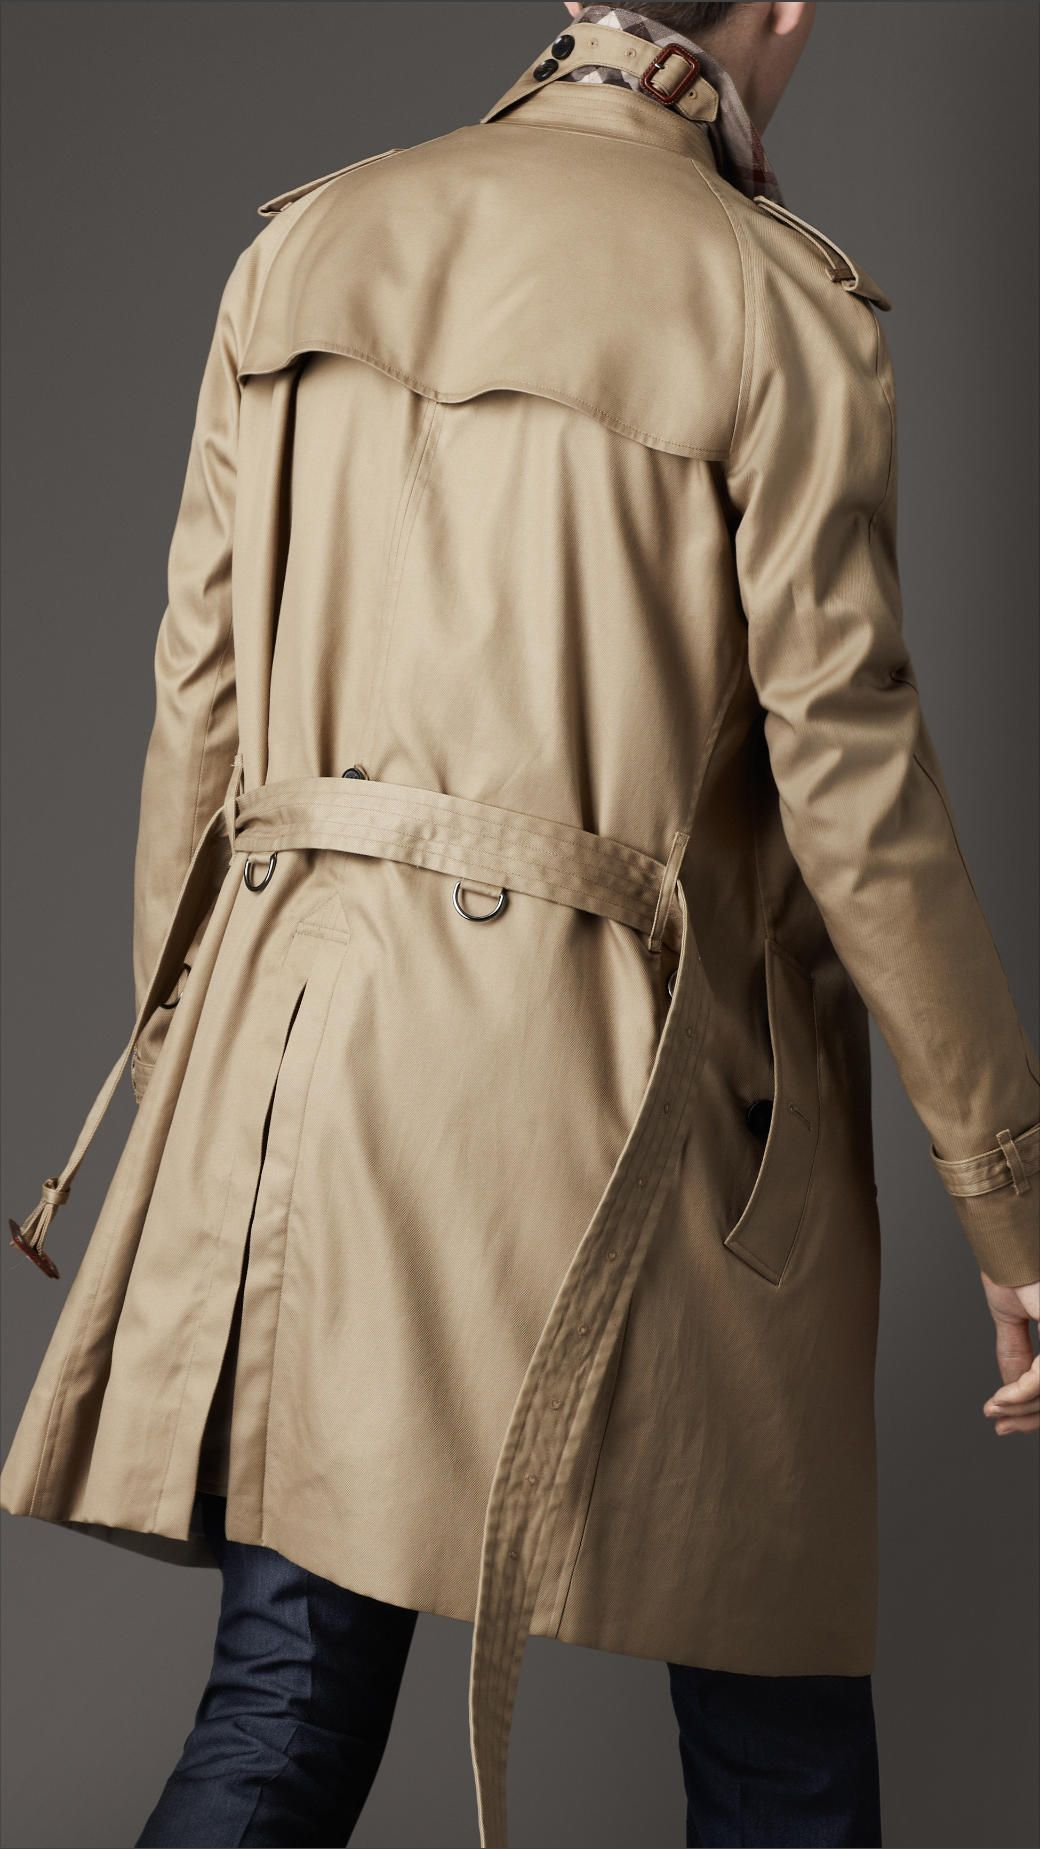 midlength cotton trench coat a classic - Burberry Raincoat